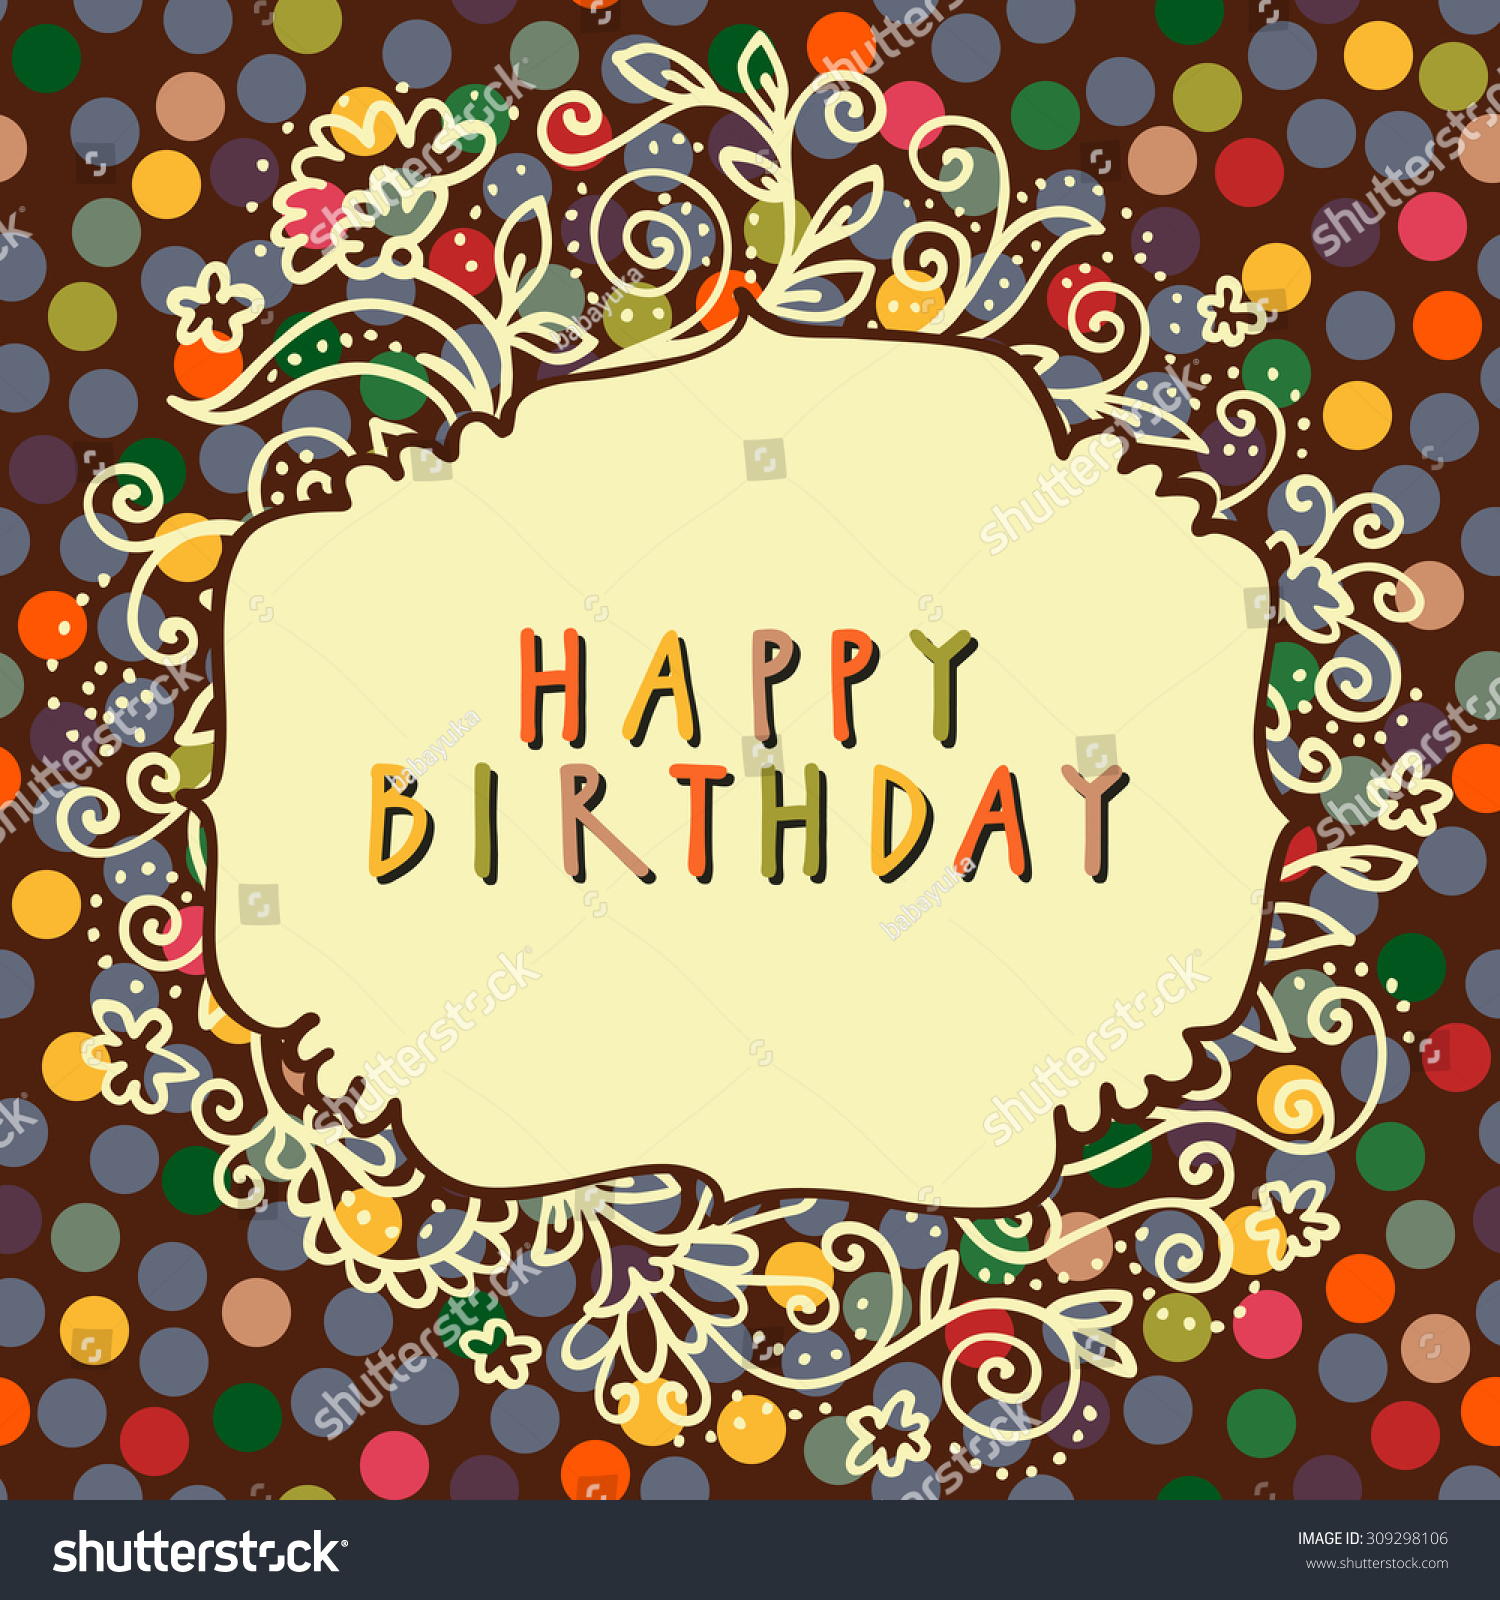 Happy Birthday Vector Doodle Greeting Card In Retro Style